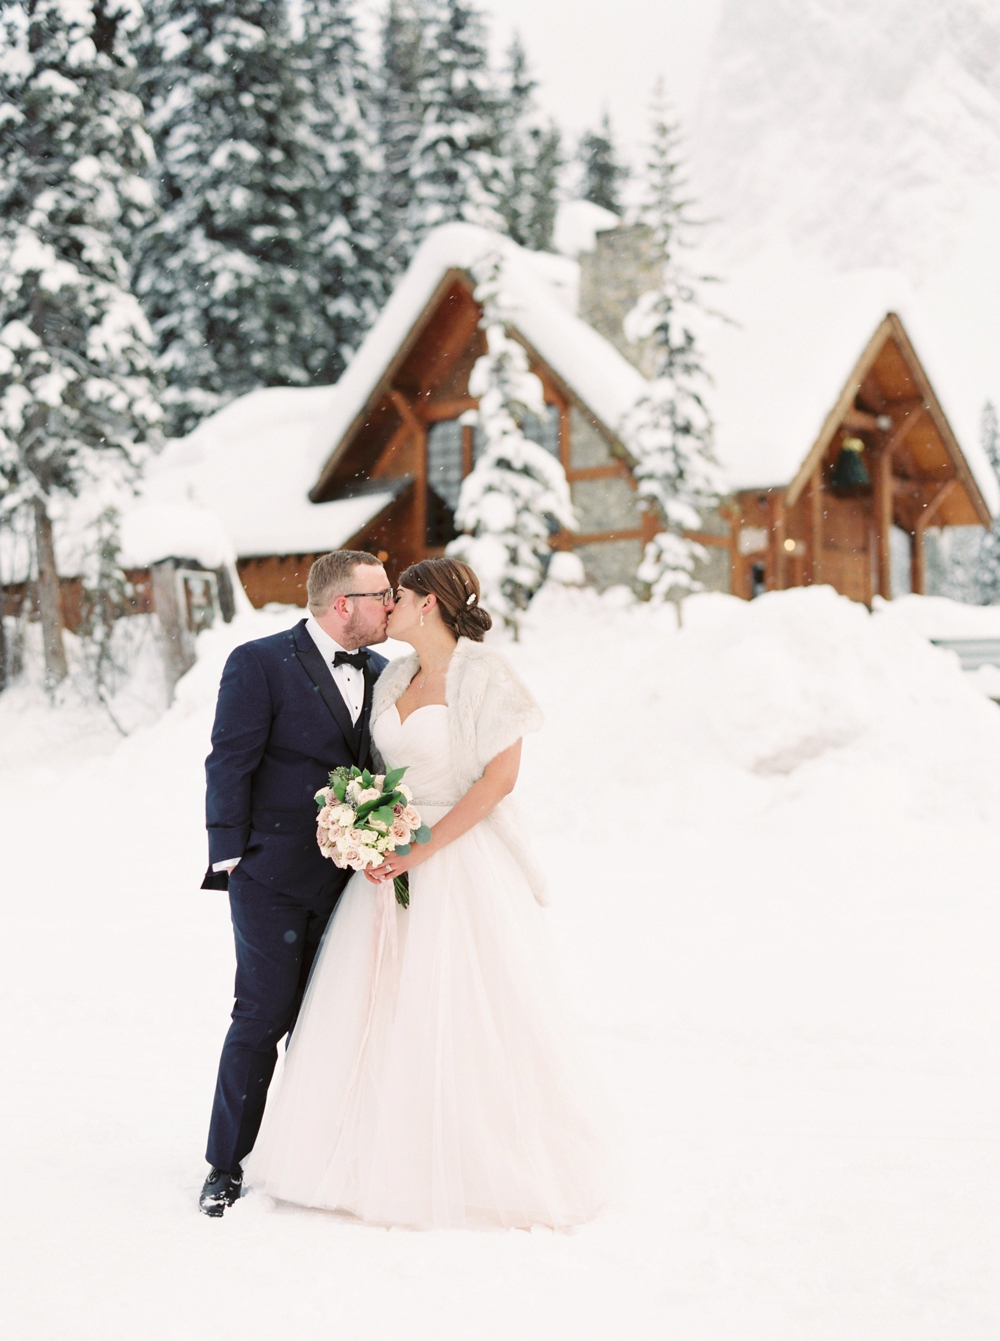 Calgary Wedding Photographers | Banff Fine Art Film Wedding Photography | Emerald Lake Lodge Wedding | Winter Wonderland Wedding